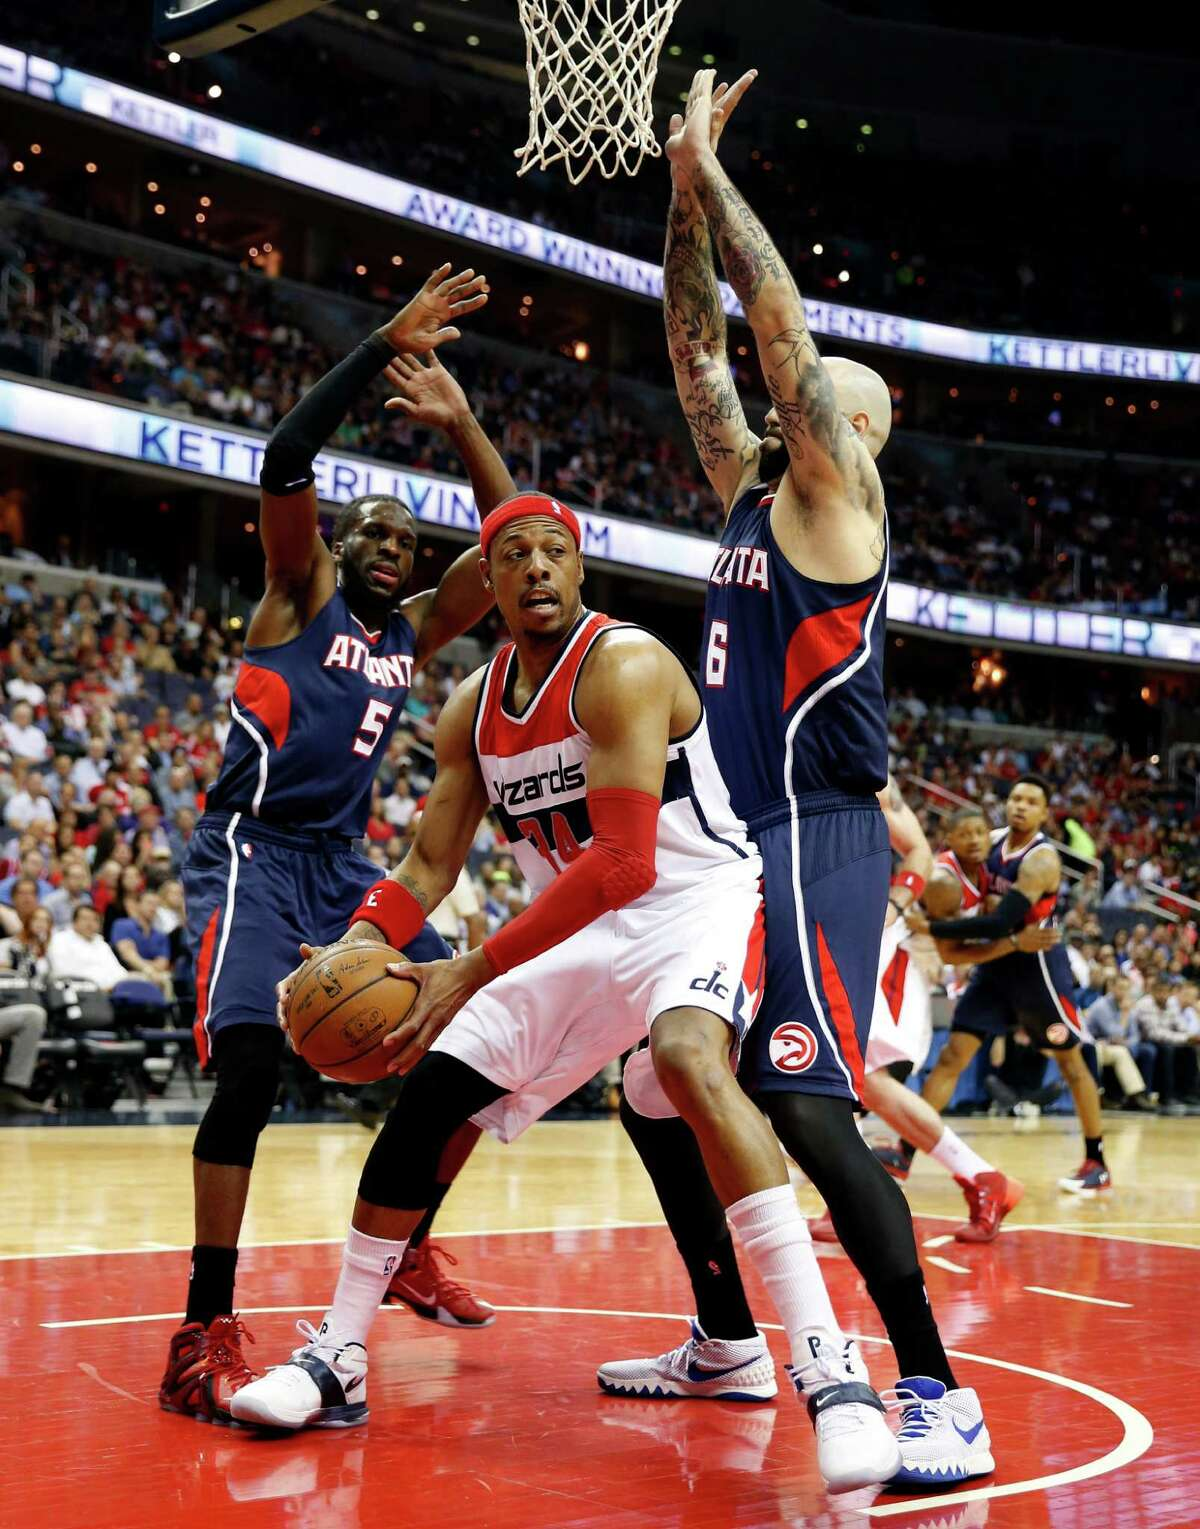 Washington Wizards forward Paul Pierce (34) looks to pass as he is guarded by Atlanta Hawks forwards DeMarre Carroll (5) and Pero Antic (6), from Macedonia, in the first half of Game 6 of the second round of the NBA basketball playoffs, Friday, May 15, 2015, in Washington. (AP Photo/Alex Brandon) ORG XMIT: VZN102